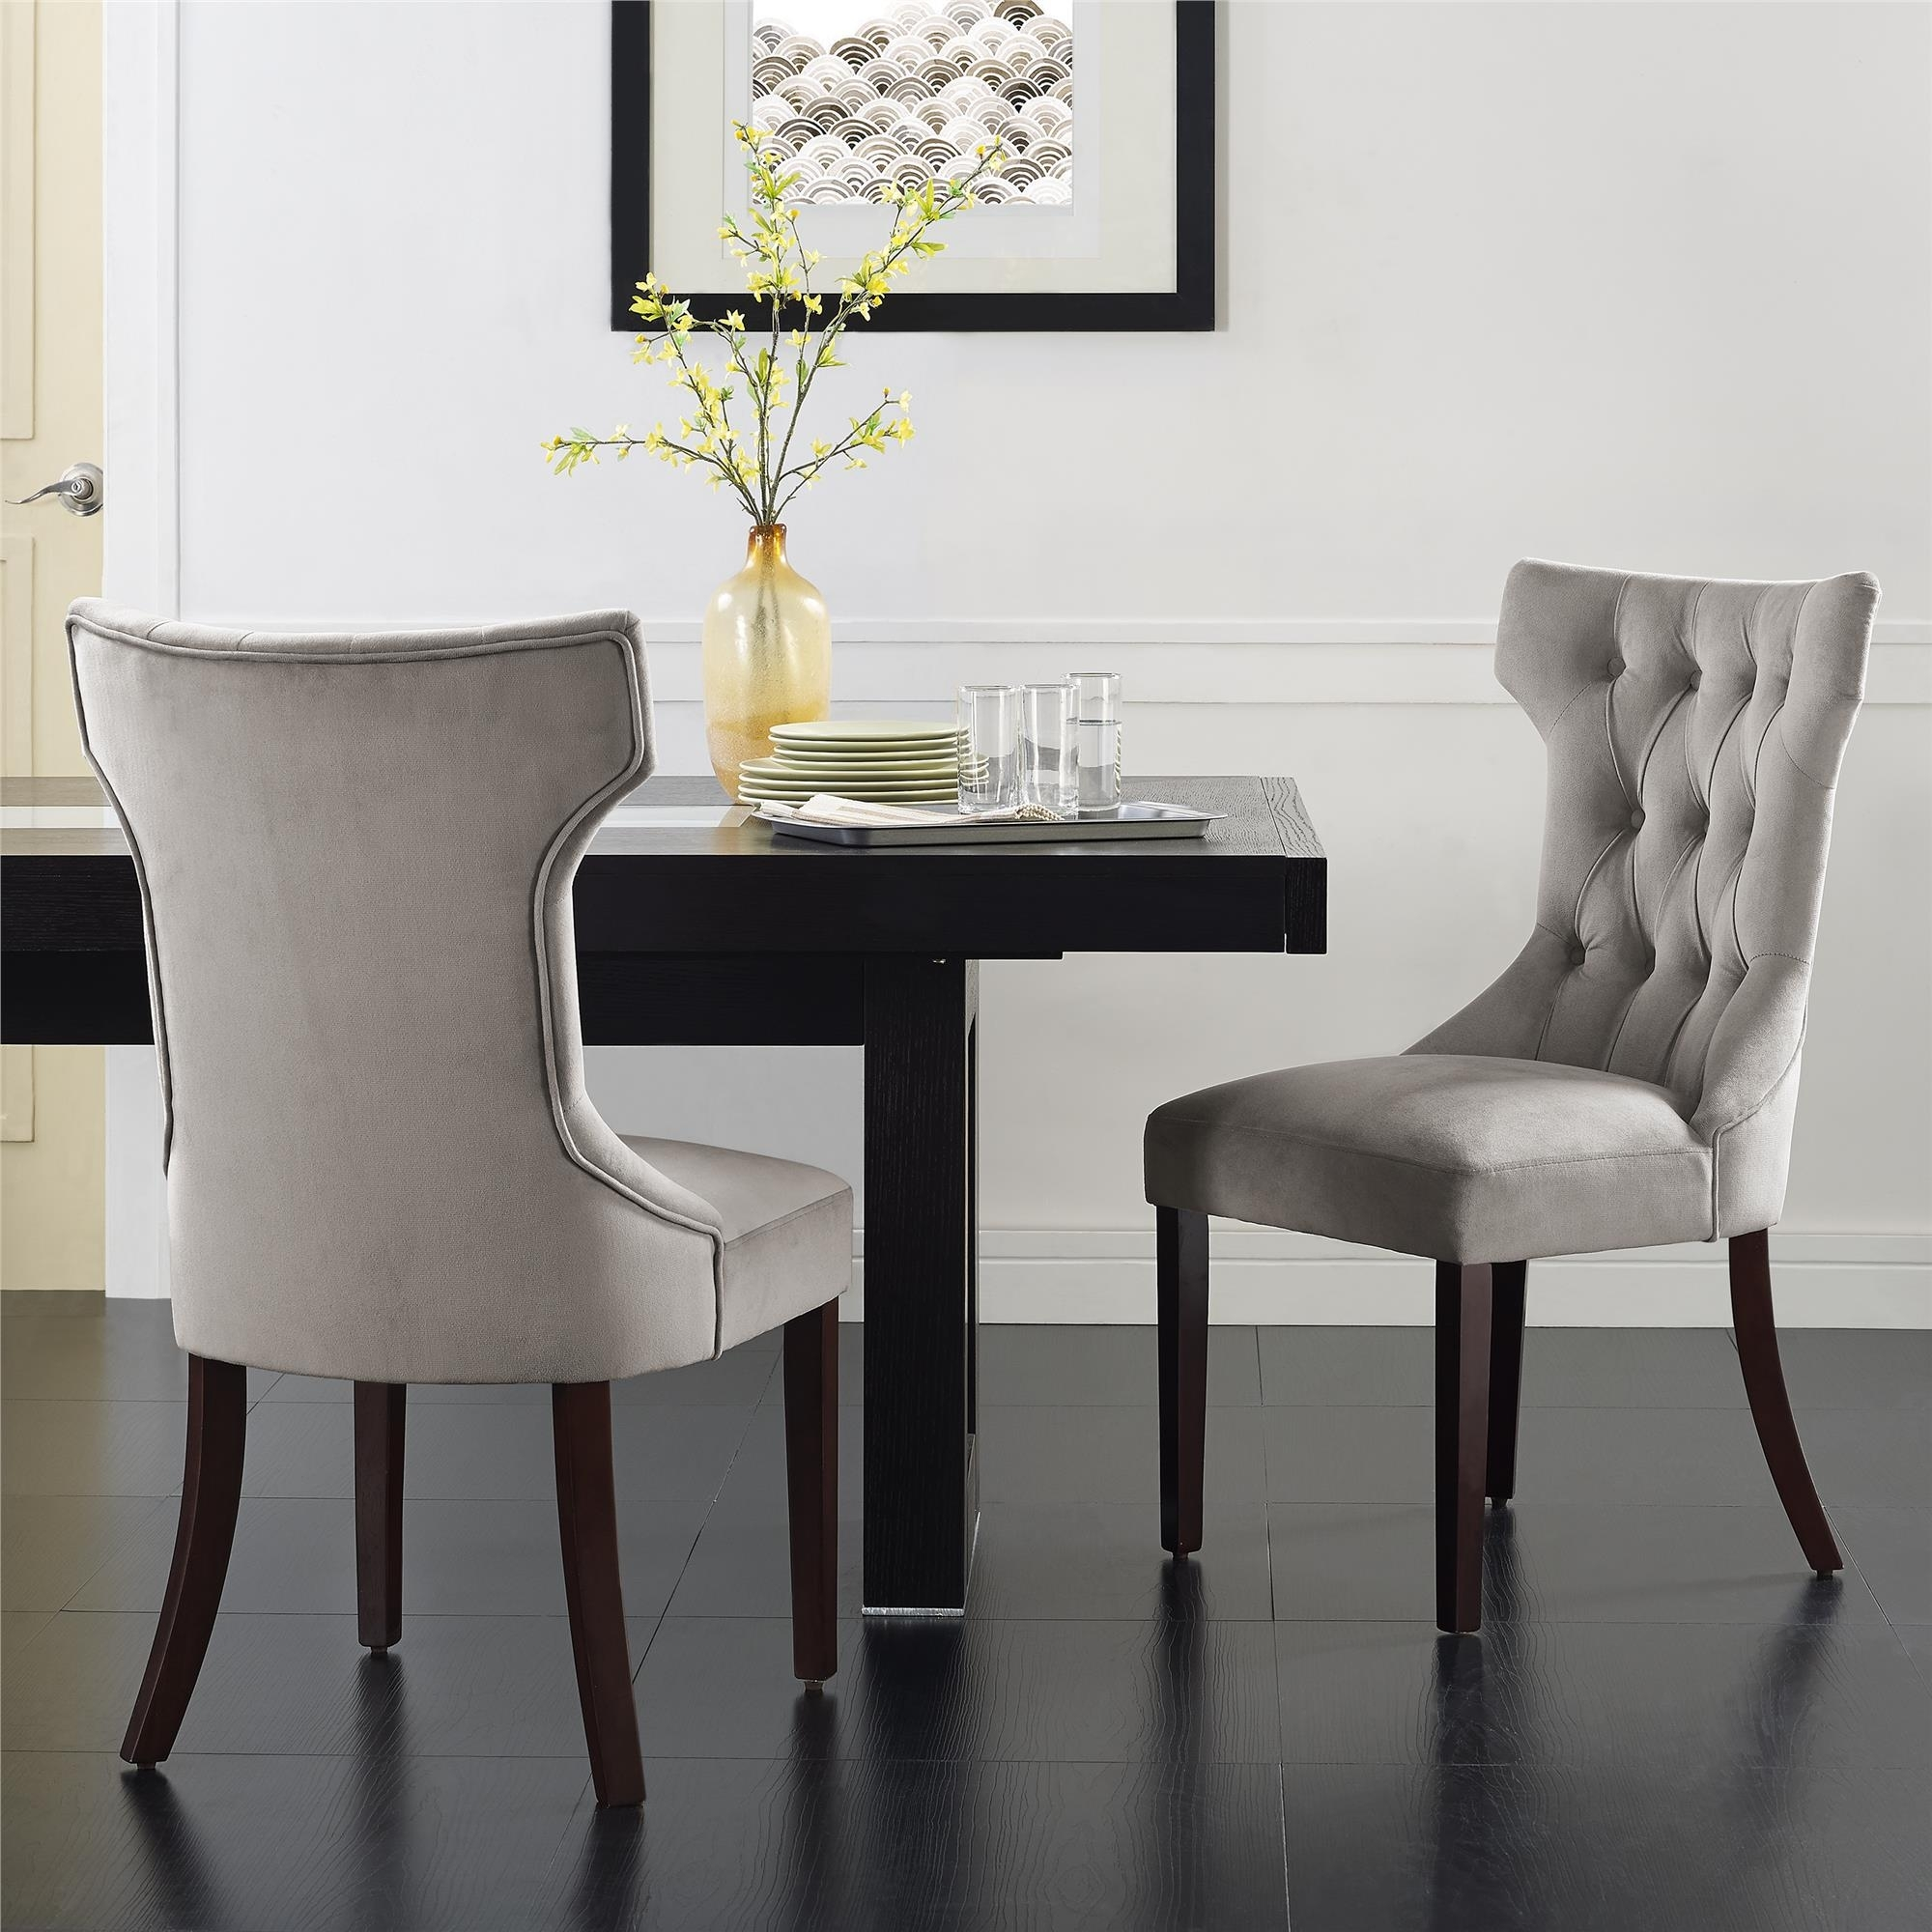 Dorel Living | Dorel Living Clairborne Tufted Dining Chair, Taupe In Newest Market 7 Piece Dining Sets With Side Chairs (View 7 of 20)